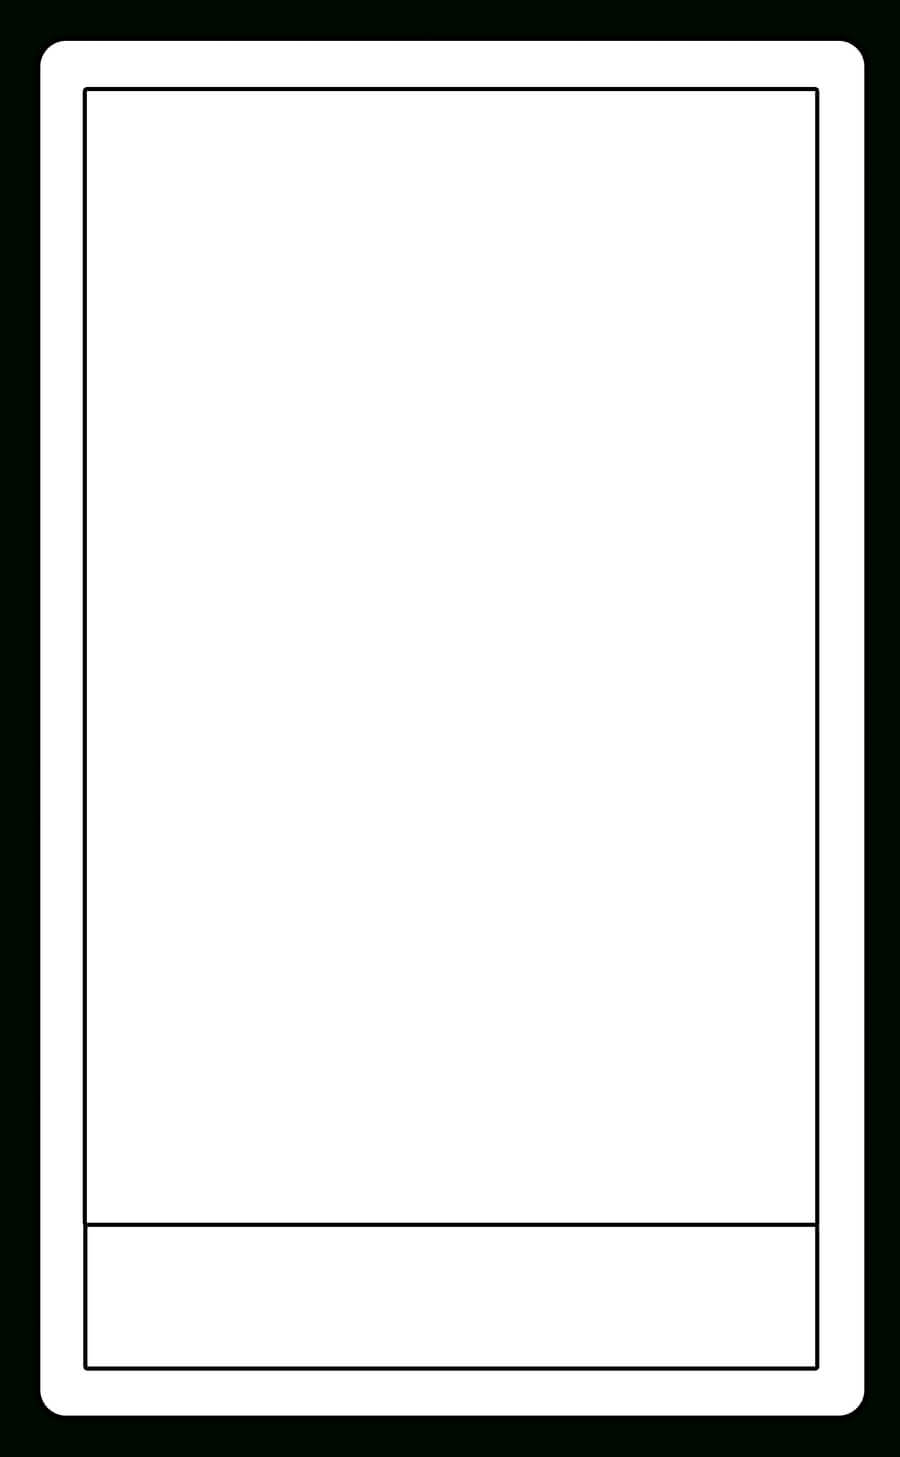 Tarot Card Templatearianod On Deviantart | Marseille Intended For Mtg Card Printing Template